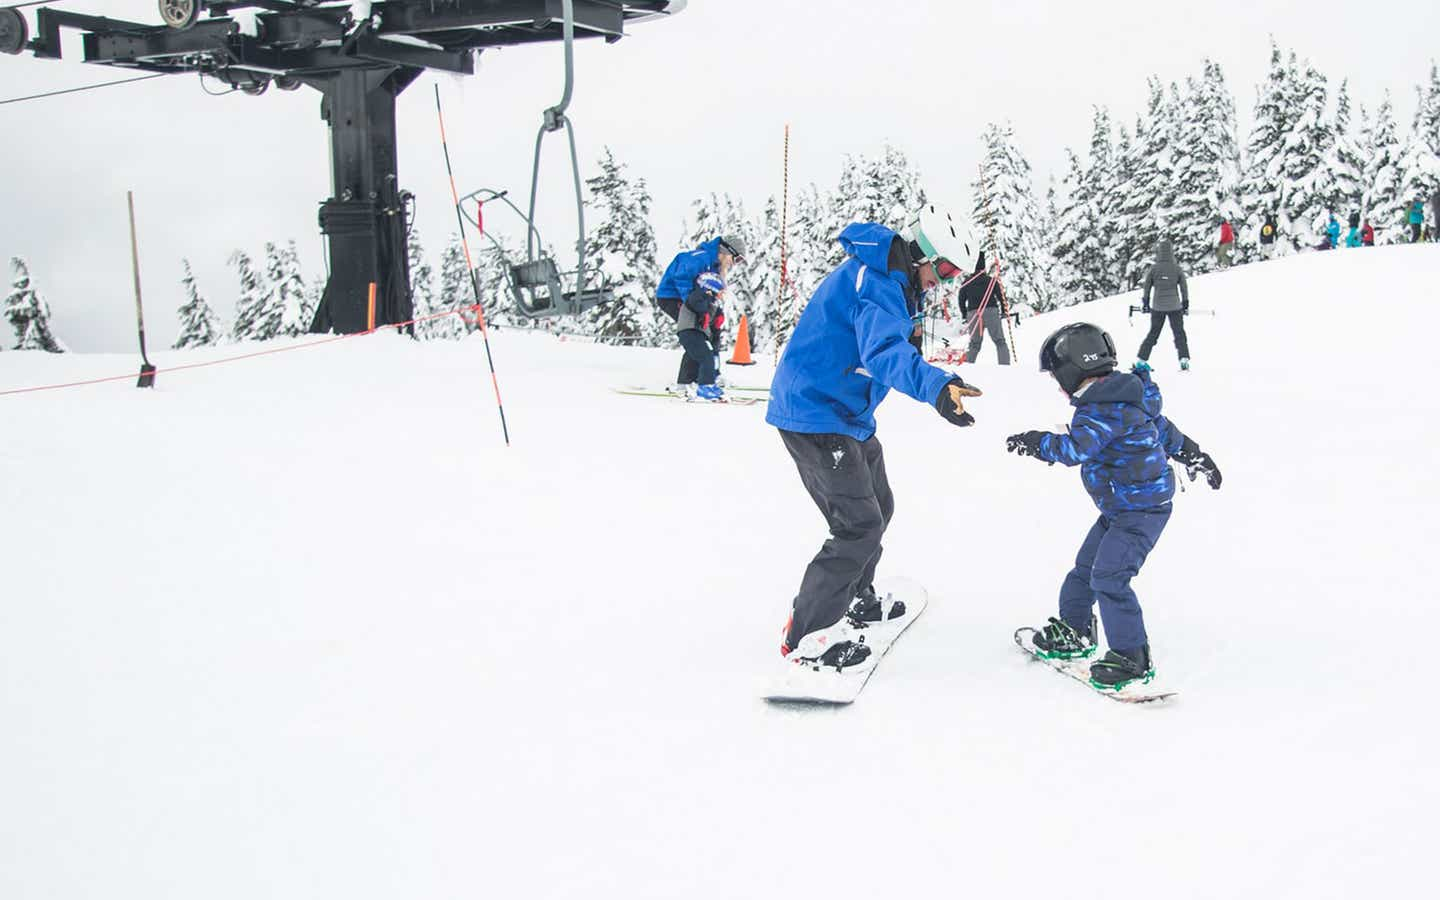 A man and child are learning to snowboard near a ski lift.